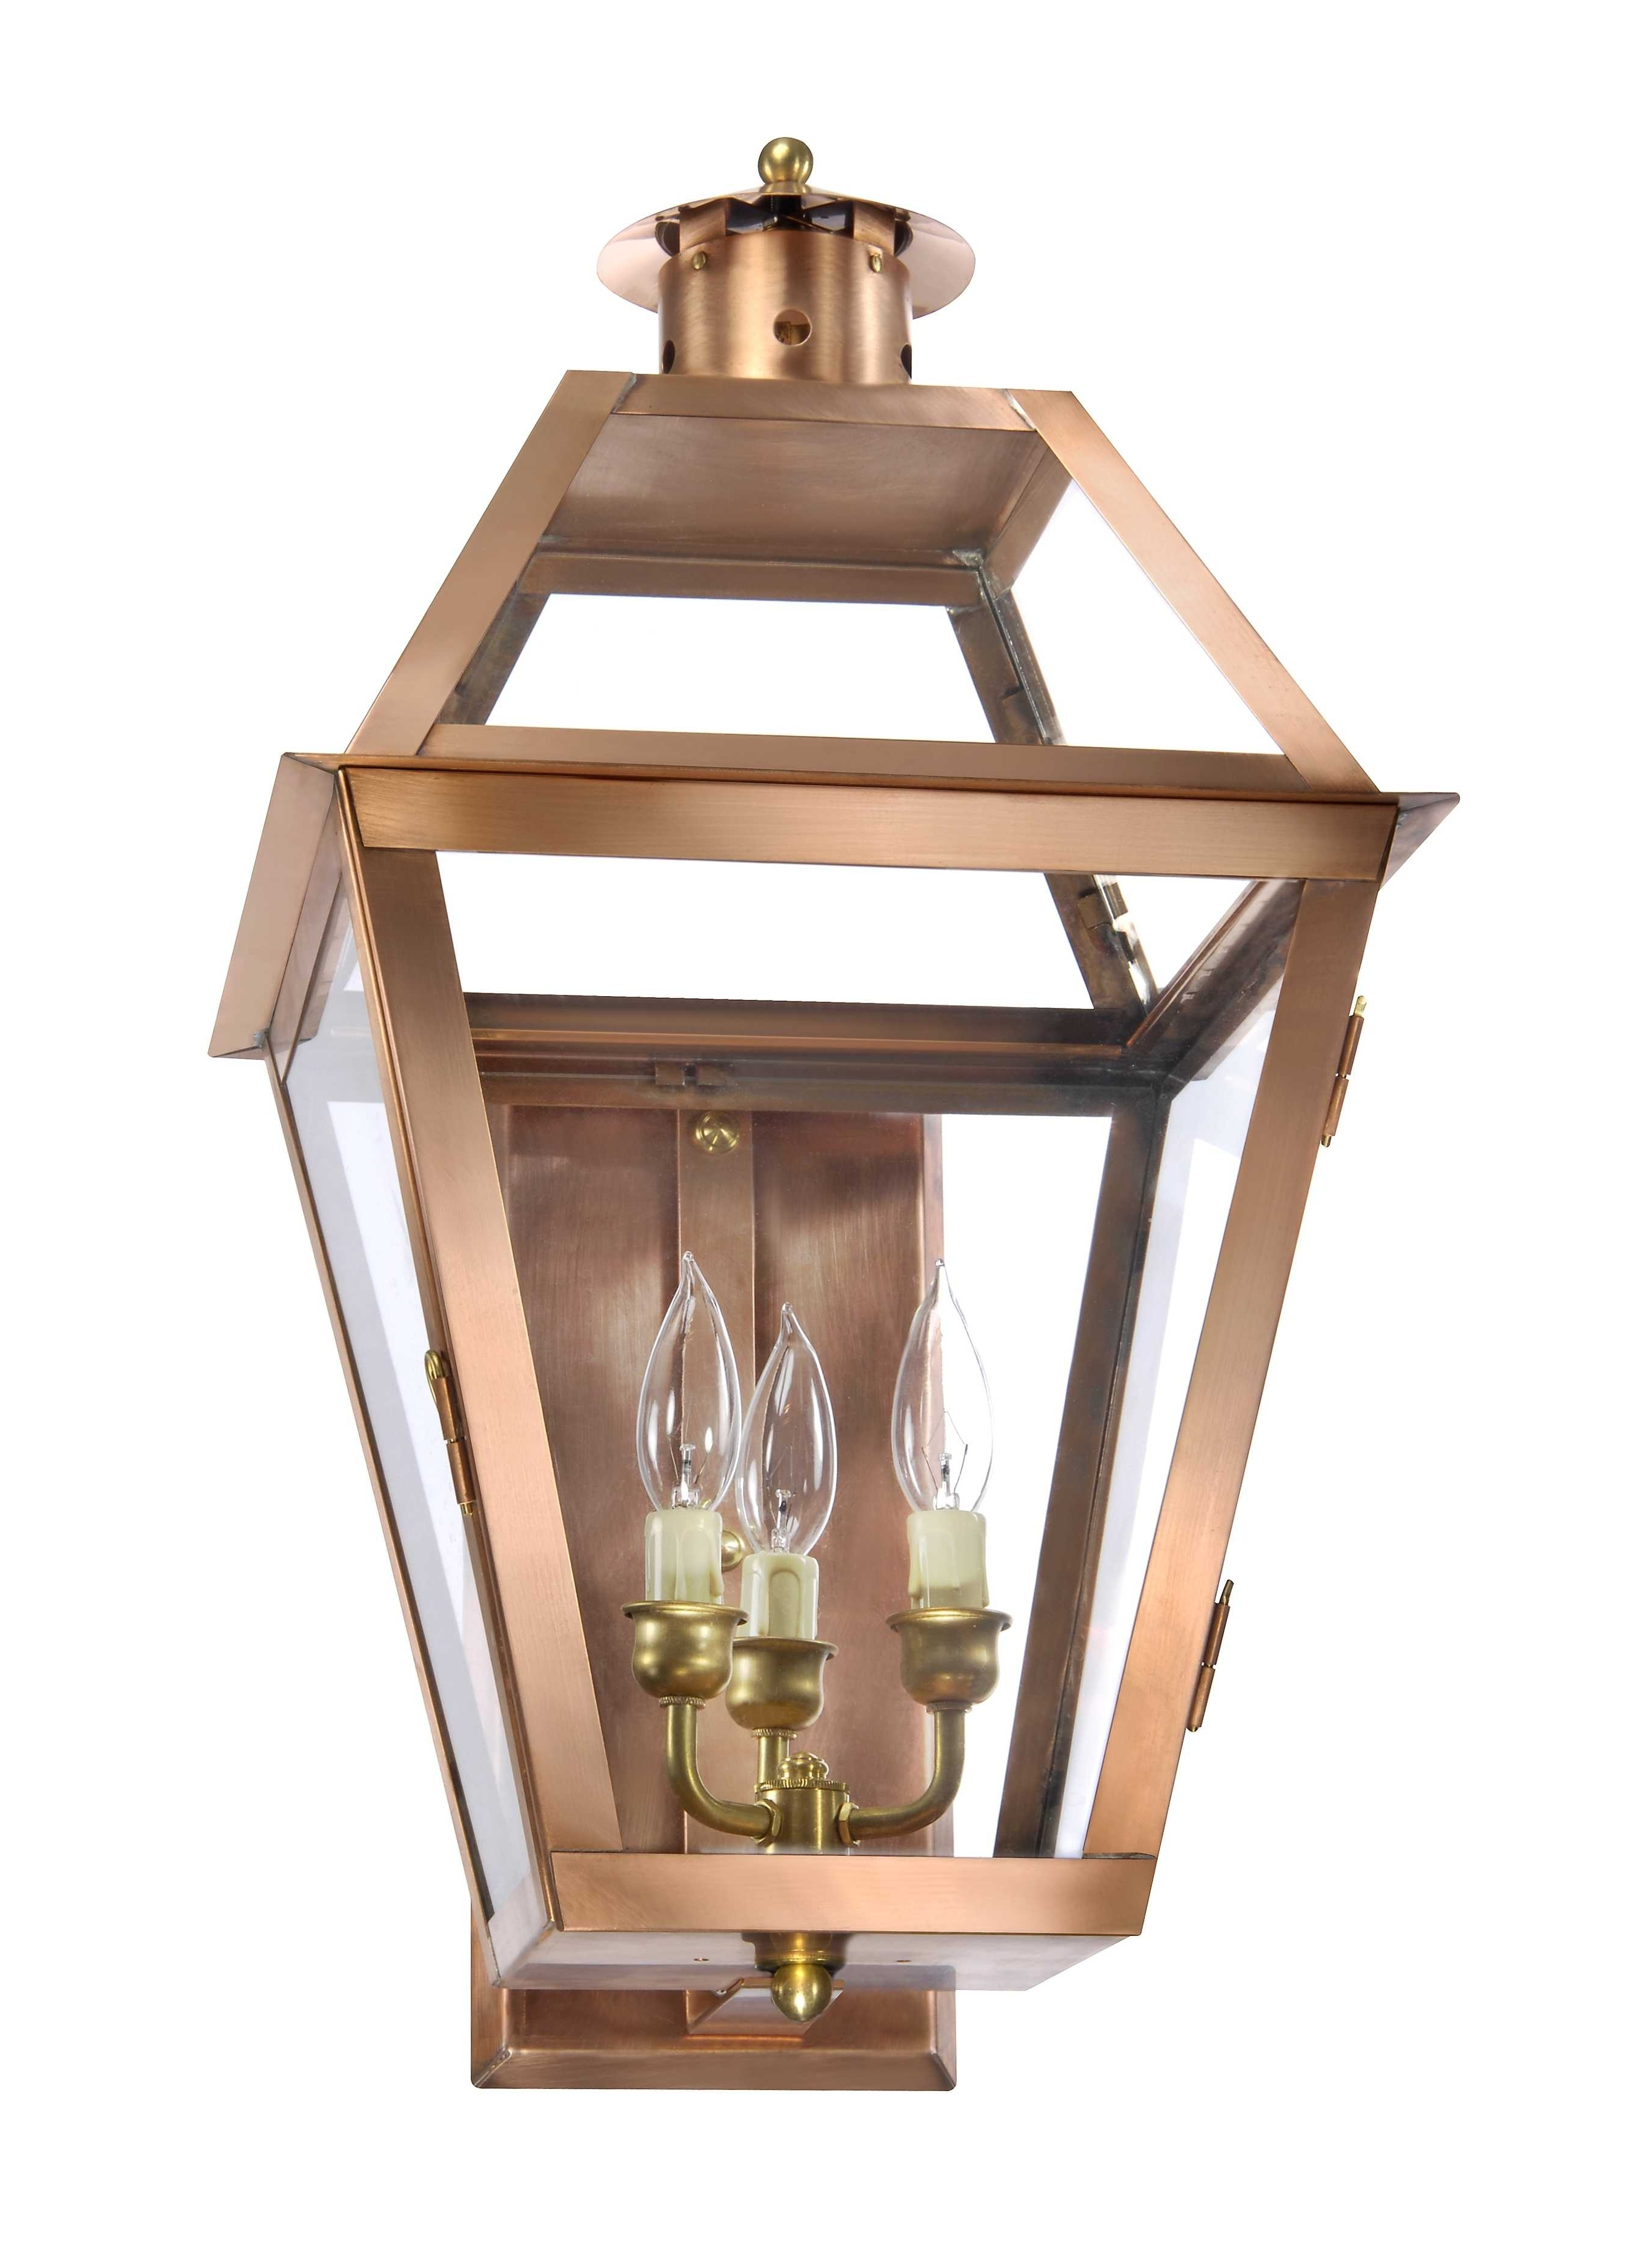 Copper Exterior Lighting – Lantern & Scroll Intended For Copper Outdoor Lanterns (View 5 of 20)